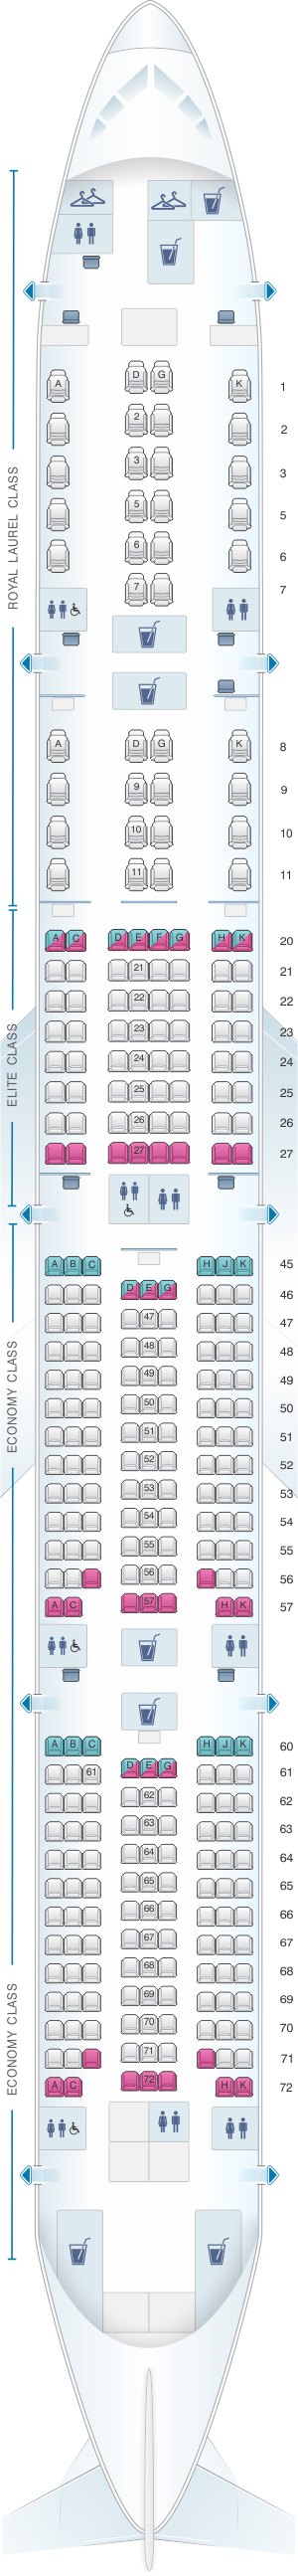 Seat map for EVA Air Boeing B777 300ER 323PAX